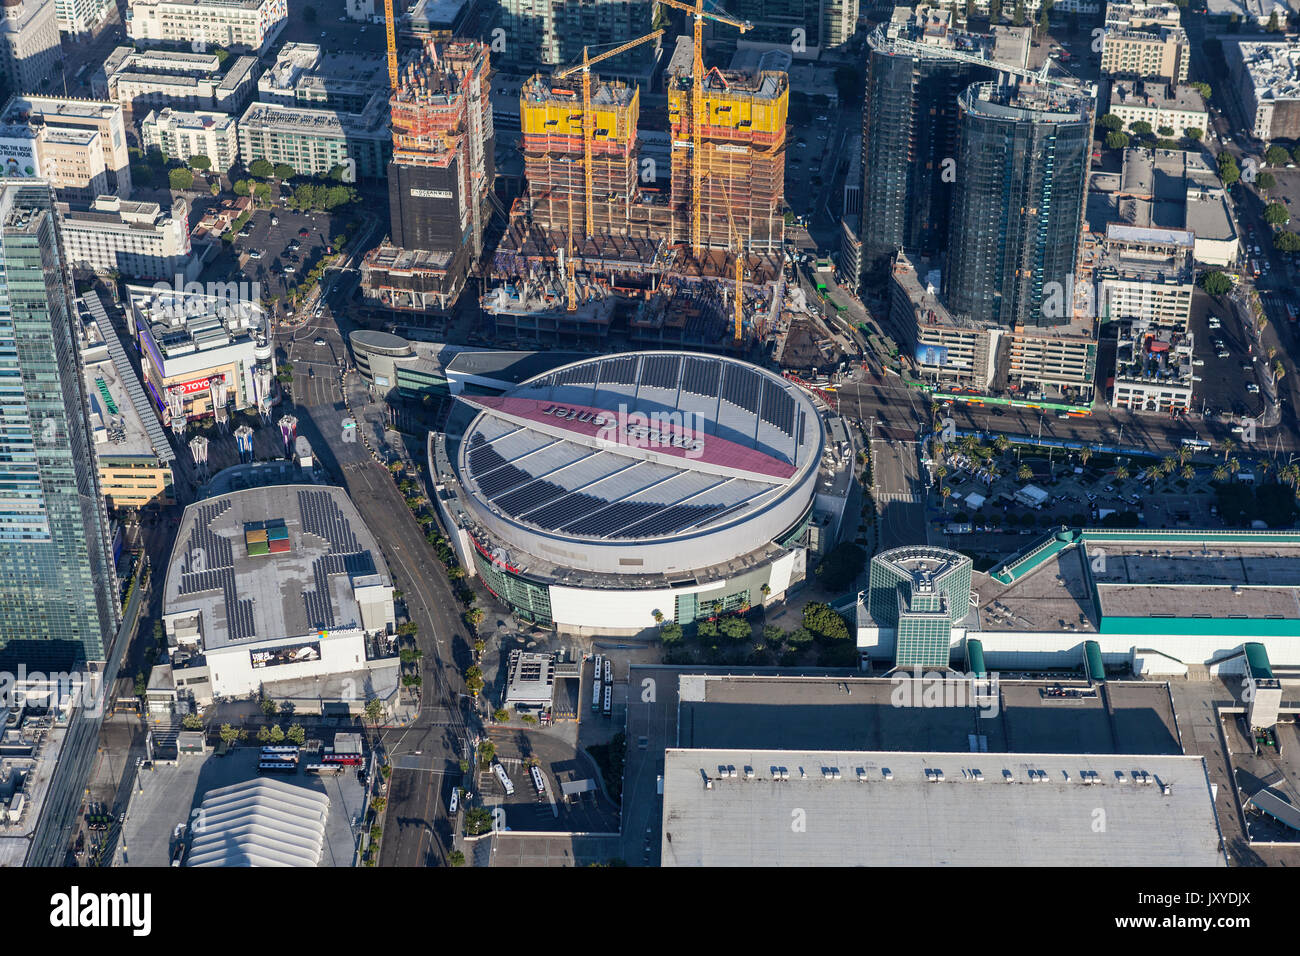 Los Angeles, California, USA - August 7, 2017:  Aerial view of Staples Center and neighboring construction projects. - Stock Image